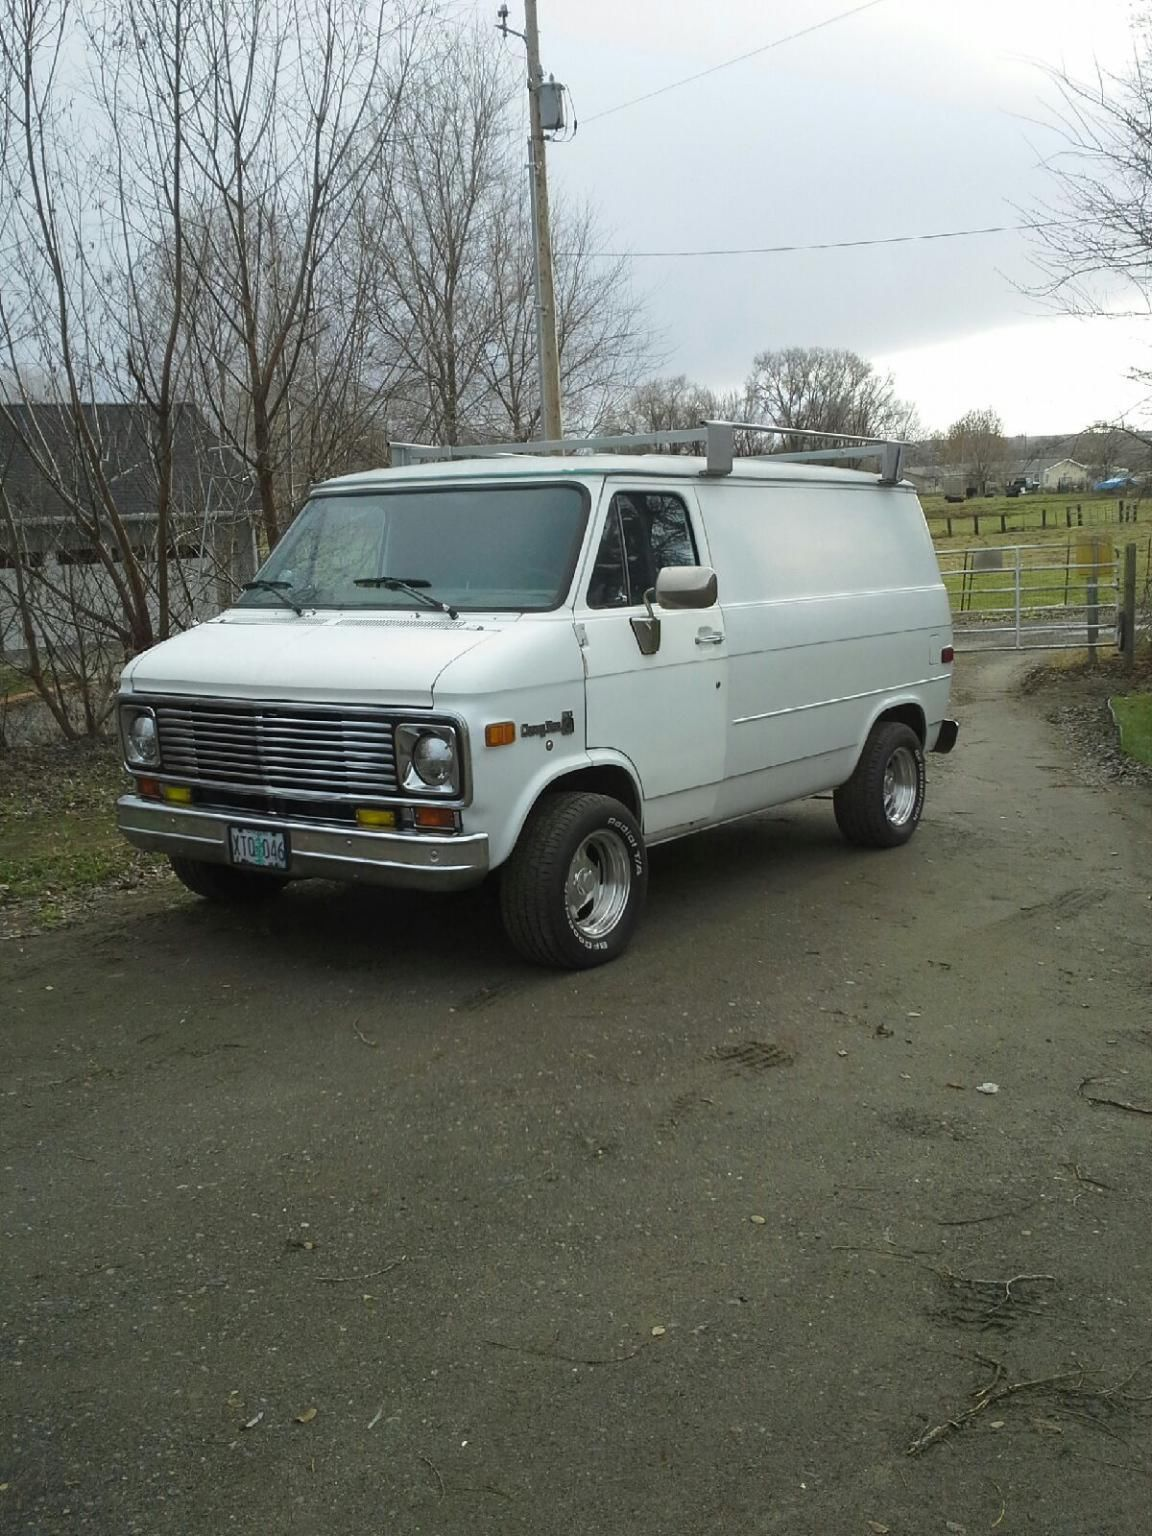 1977 chevy shorty van classic chevrolet g20 van 1977 for sale. Black Bedroom Furniture Sets. Home Design Ideas